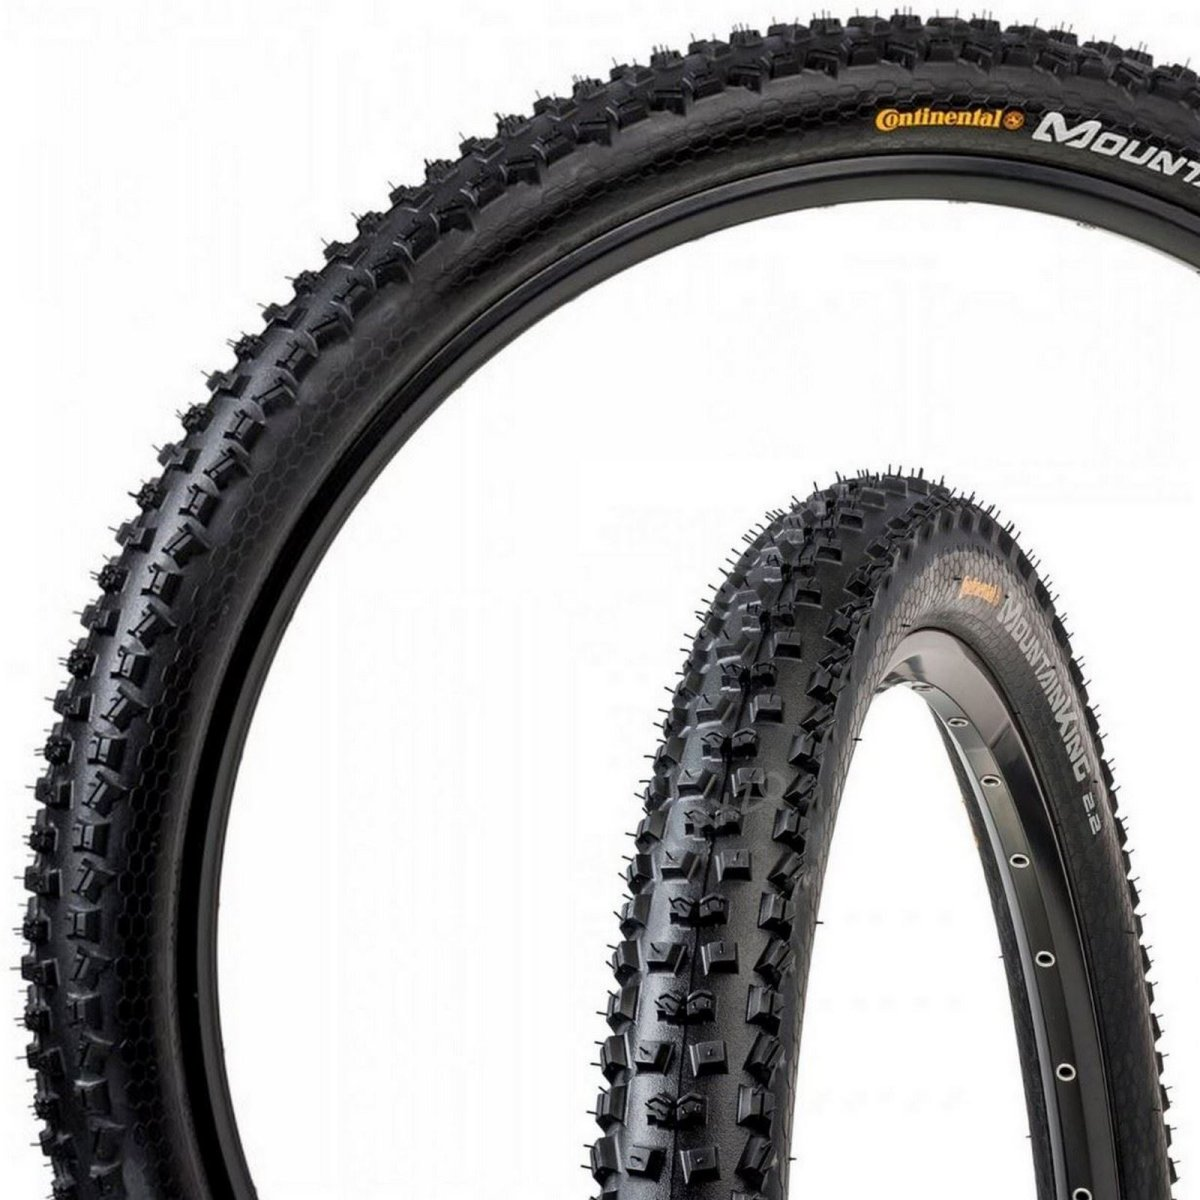 Покрышка Continental Mountain King 27.5x2.2 Performance, Skin 4 Mountain King 150246